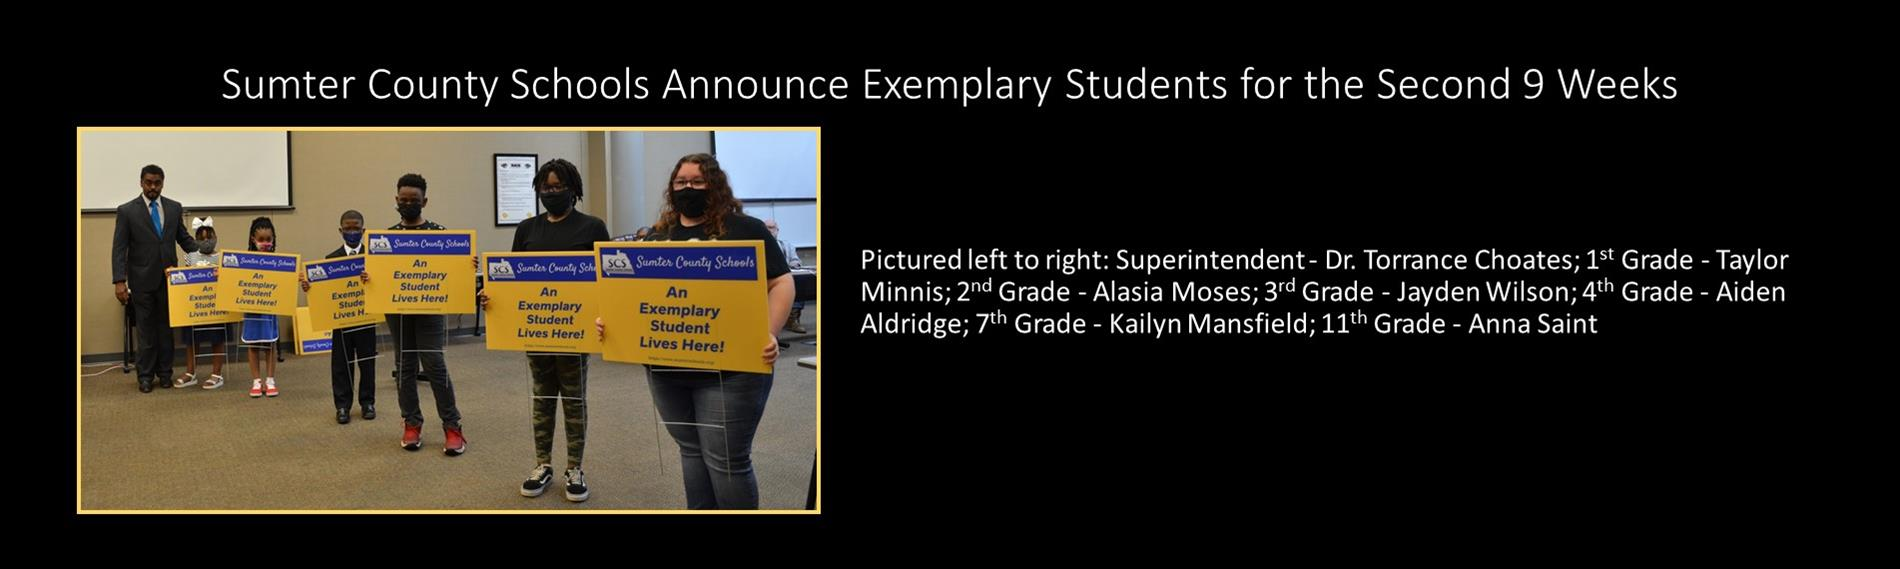 Sumter County Schools Announce Exemplary Students for the Second 9 weeks